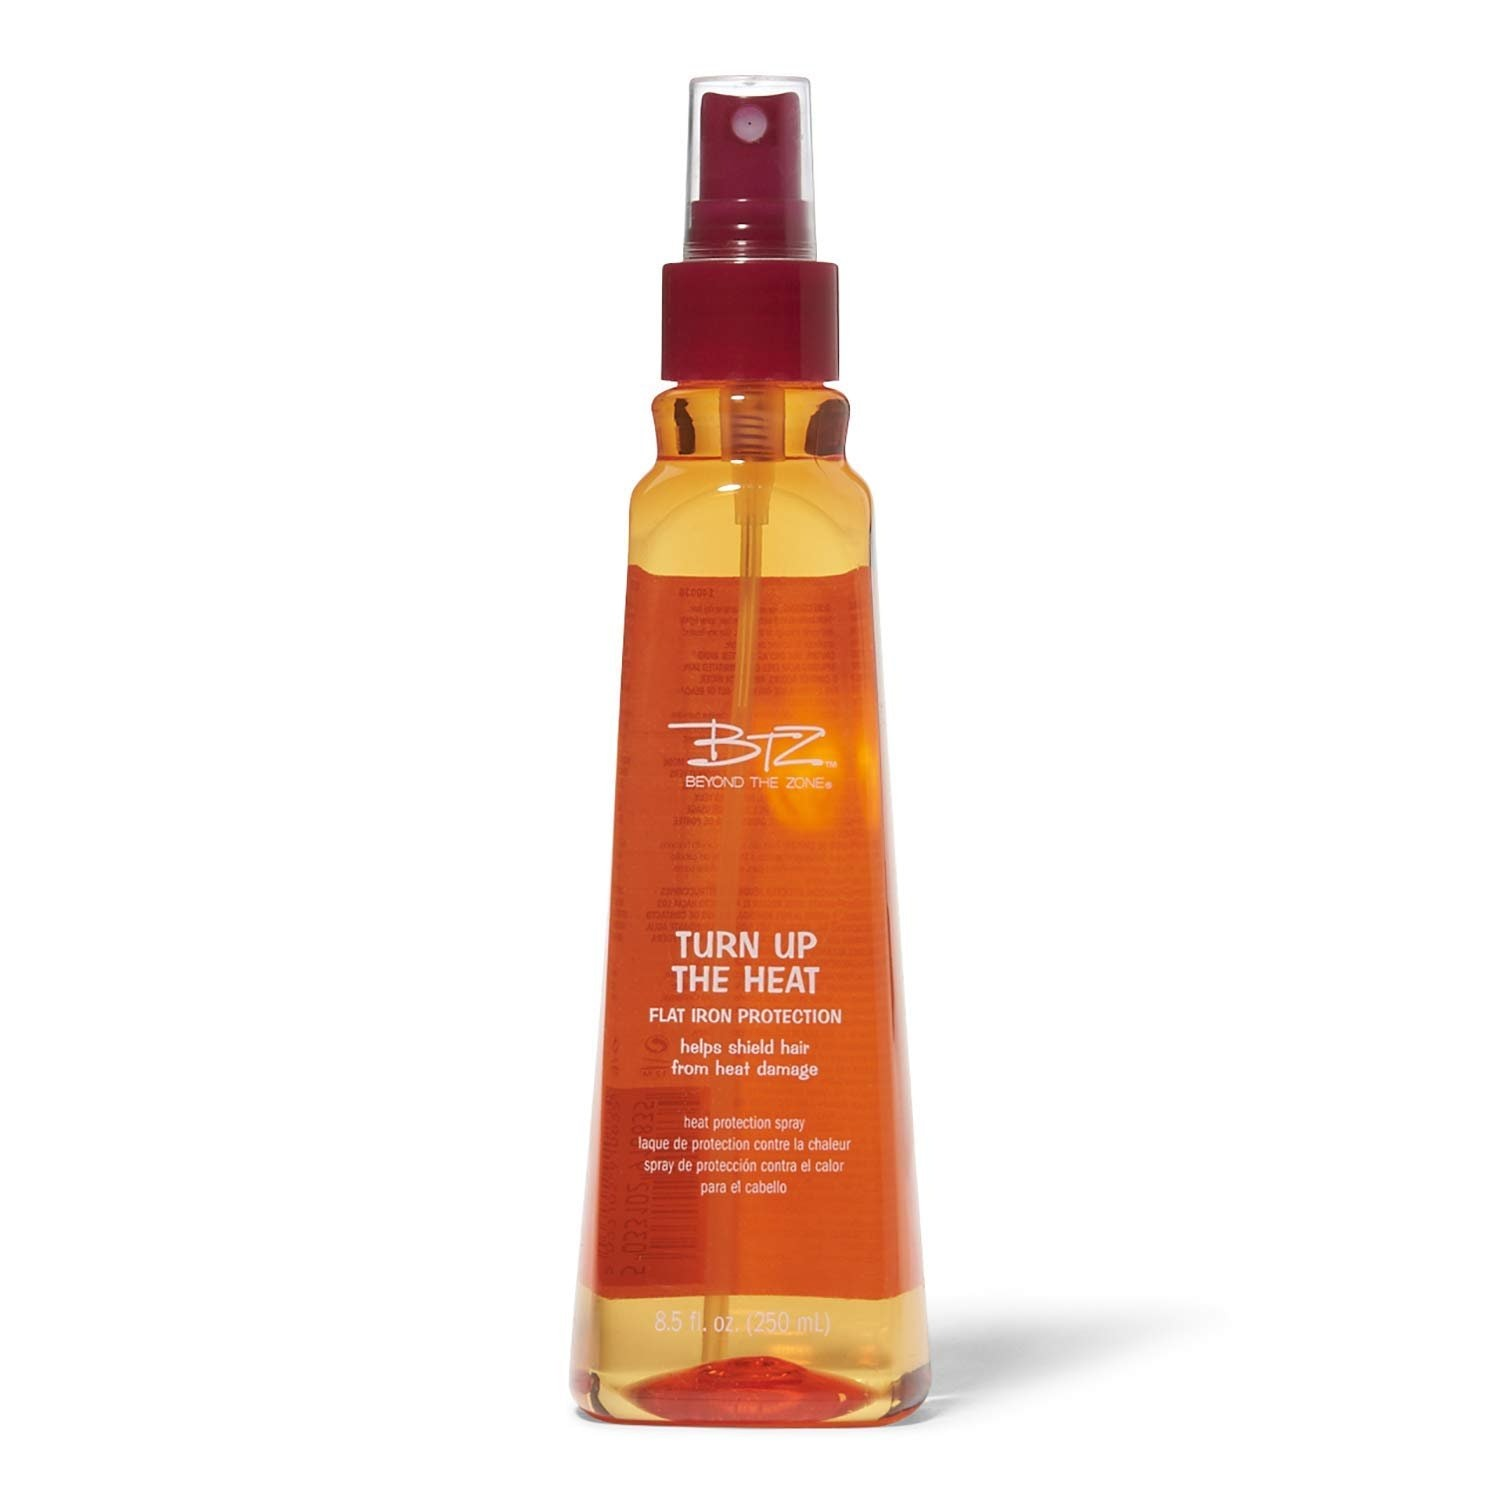 Turn Up the Heat by Beyond the Zone Flat Iron Protection Spray